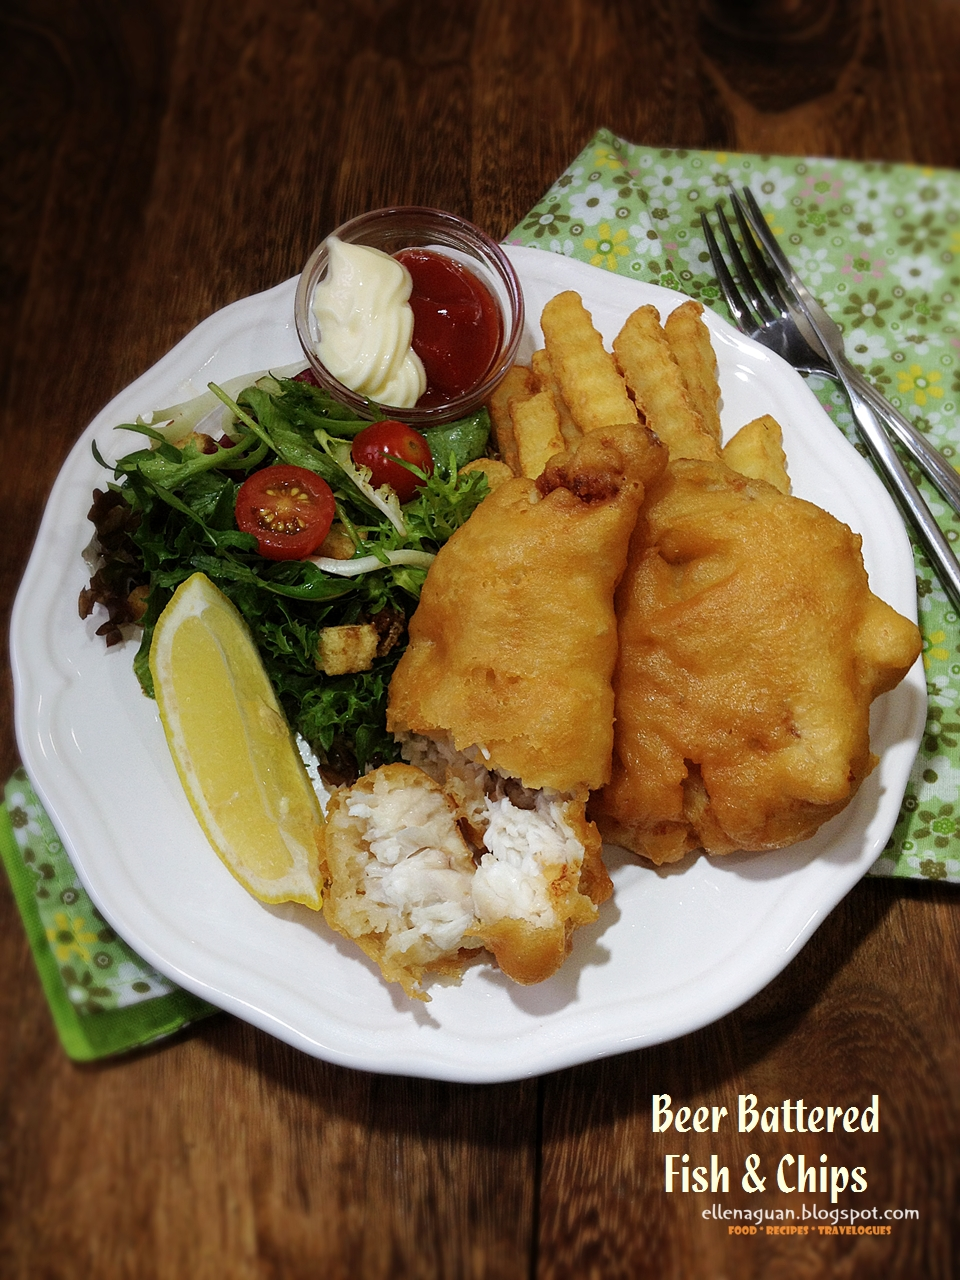 Cuisine paradise singapore food blog recipes reviews for Beer battered fish